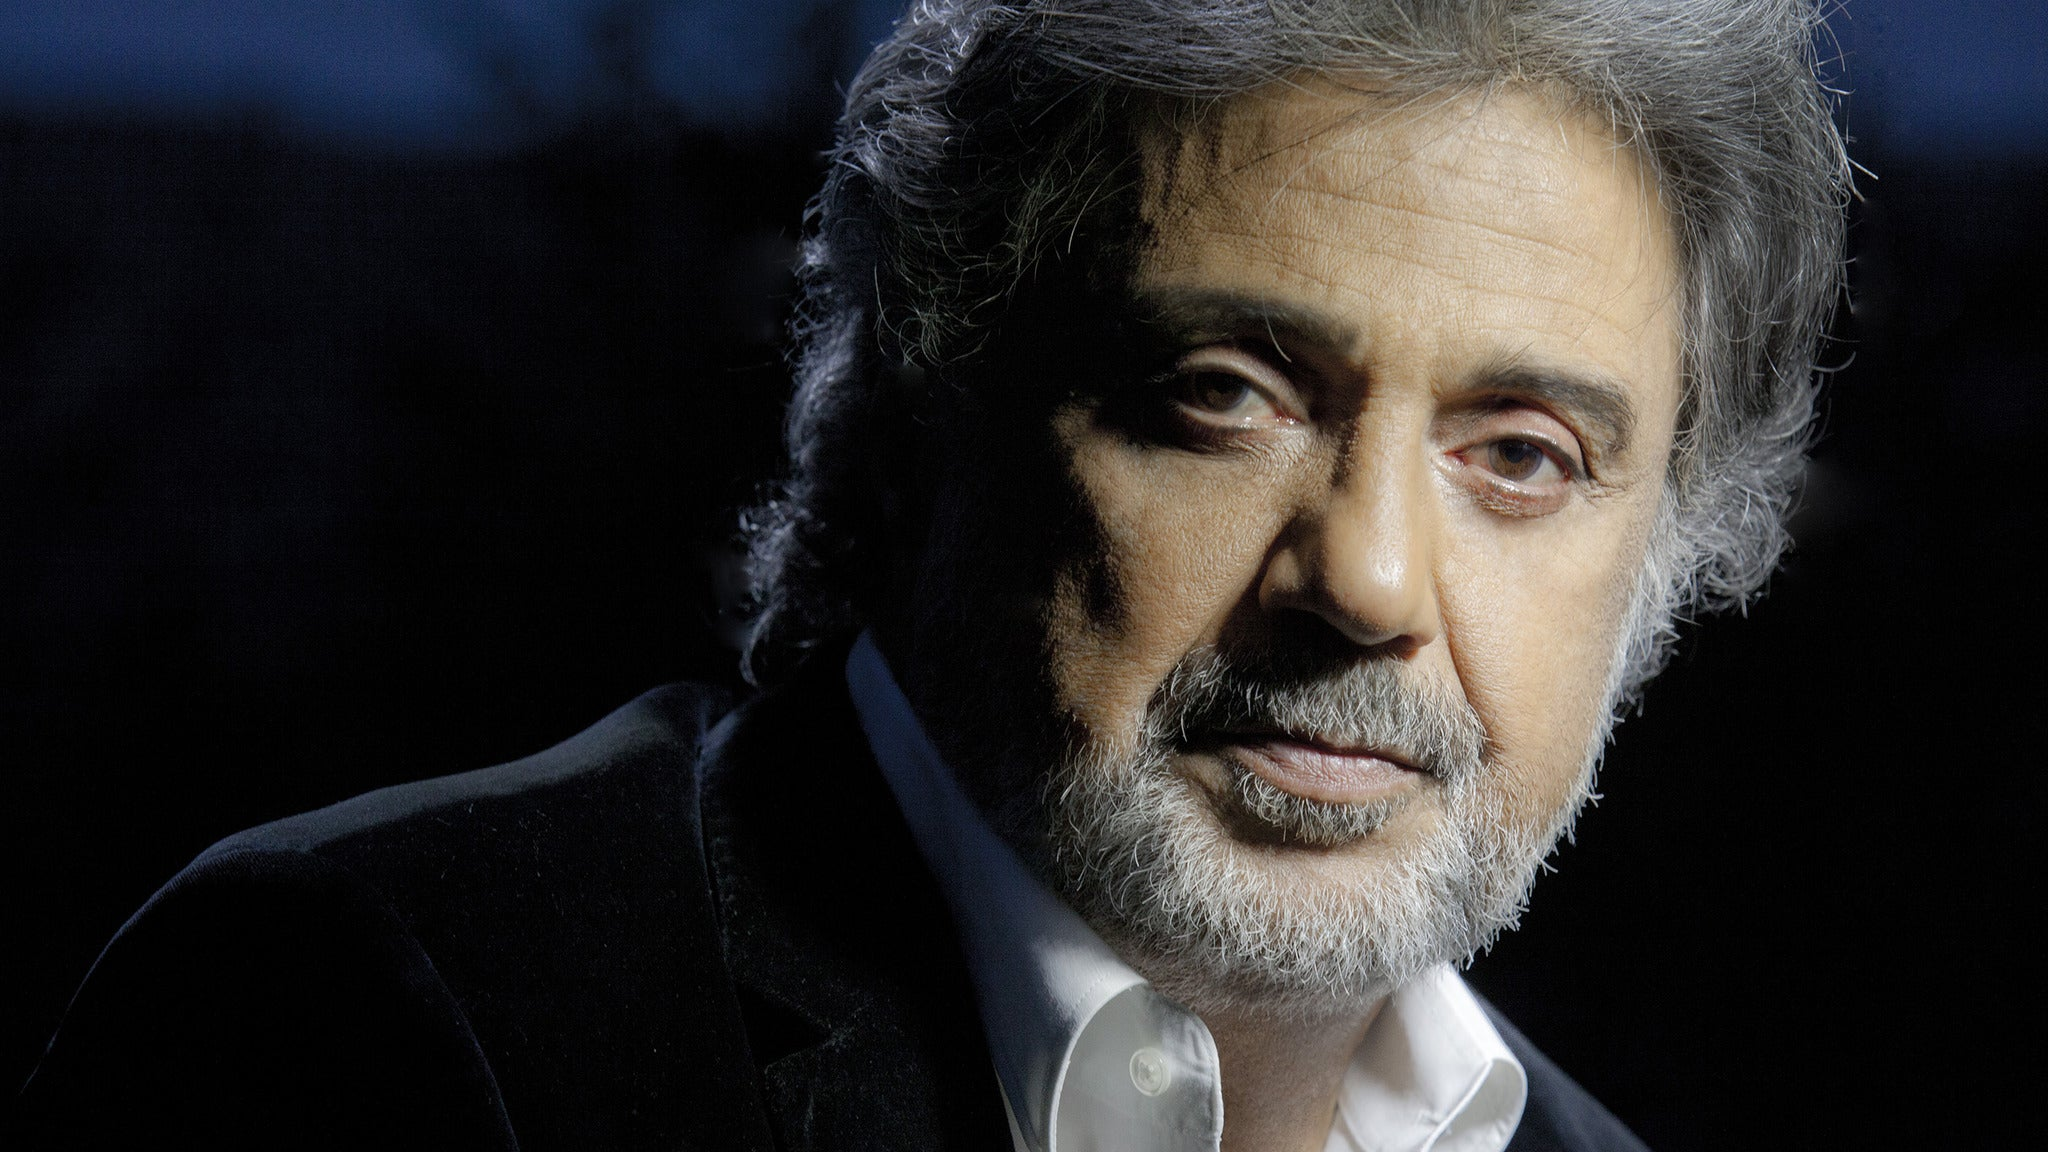 Dariush at Flint Center